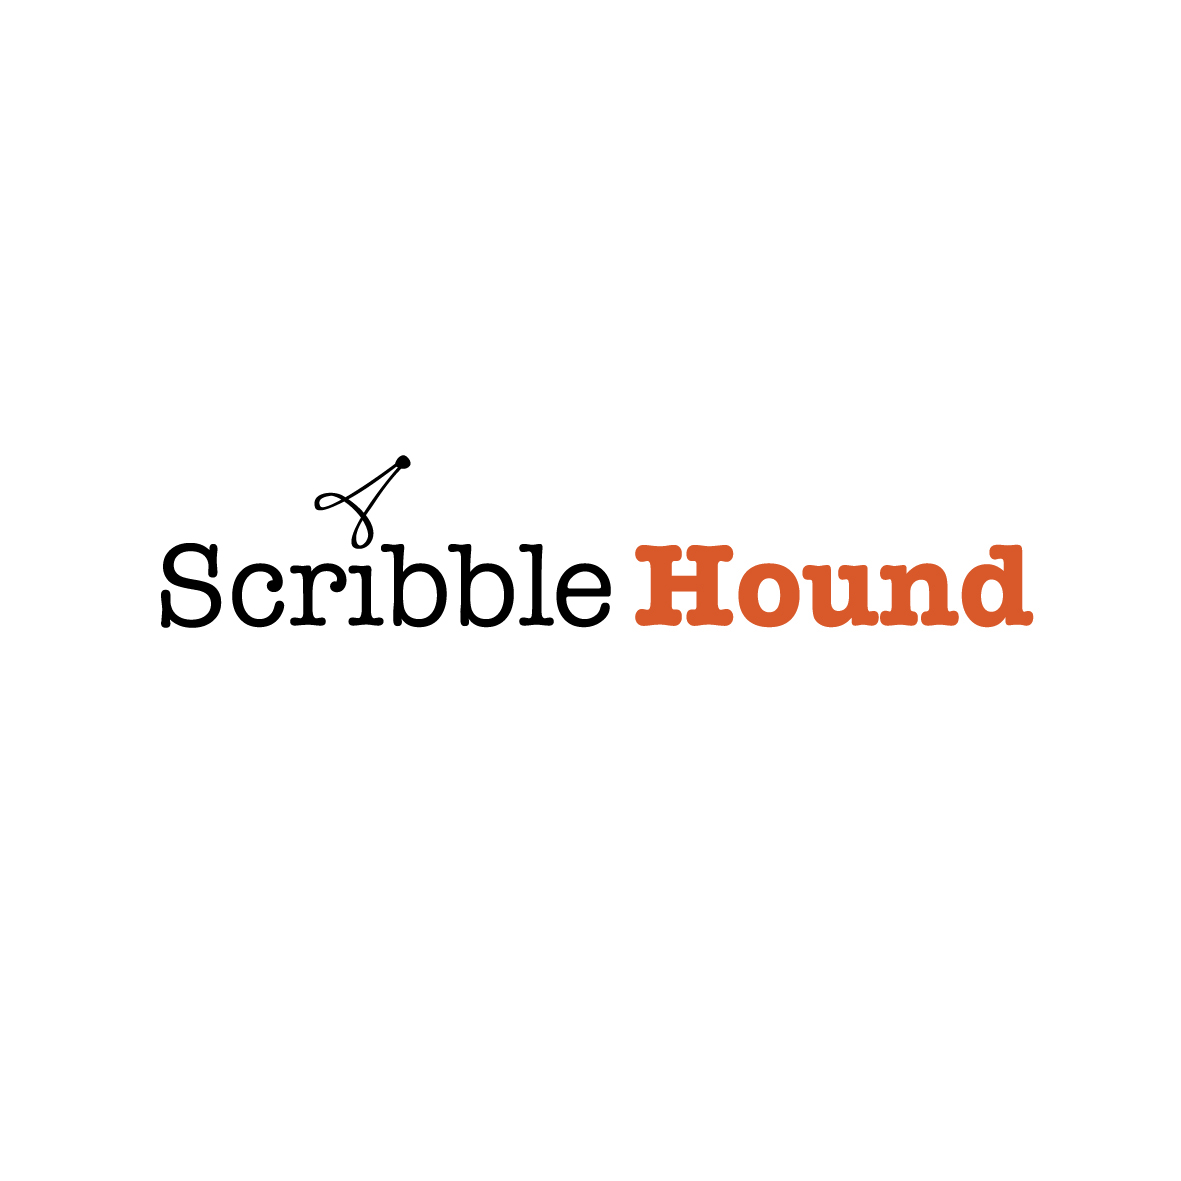 Scribble Hound